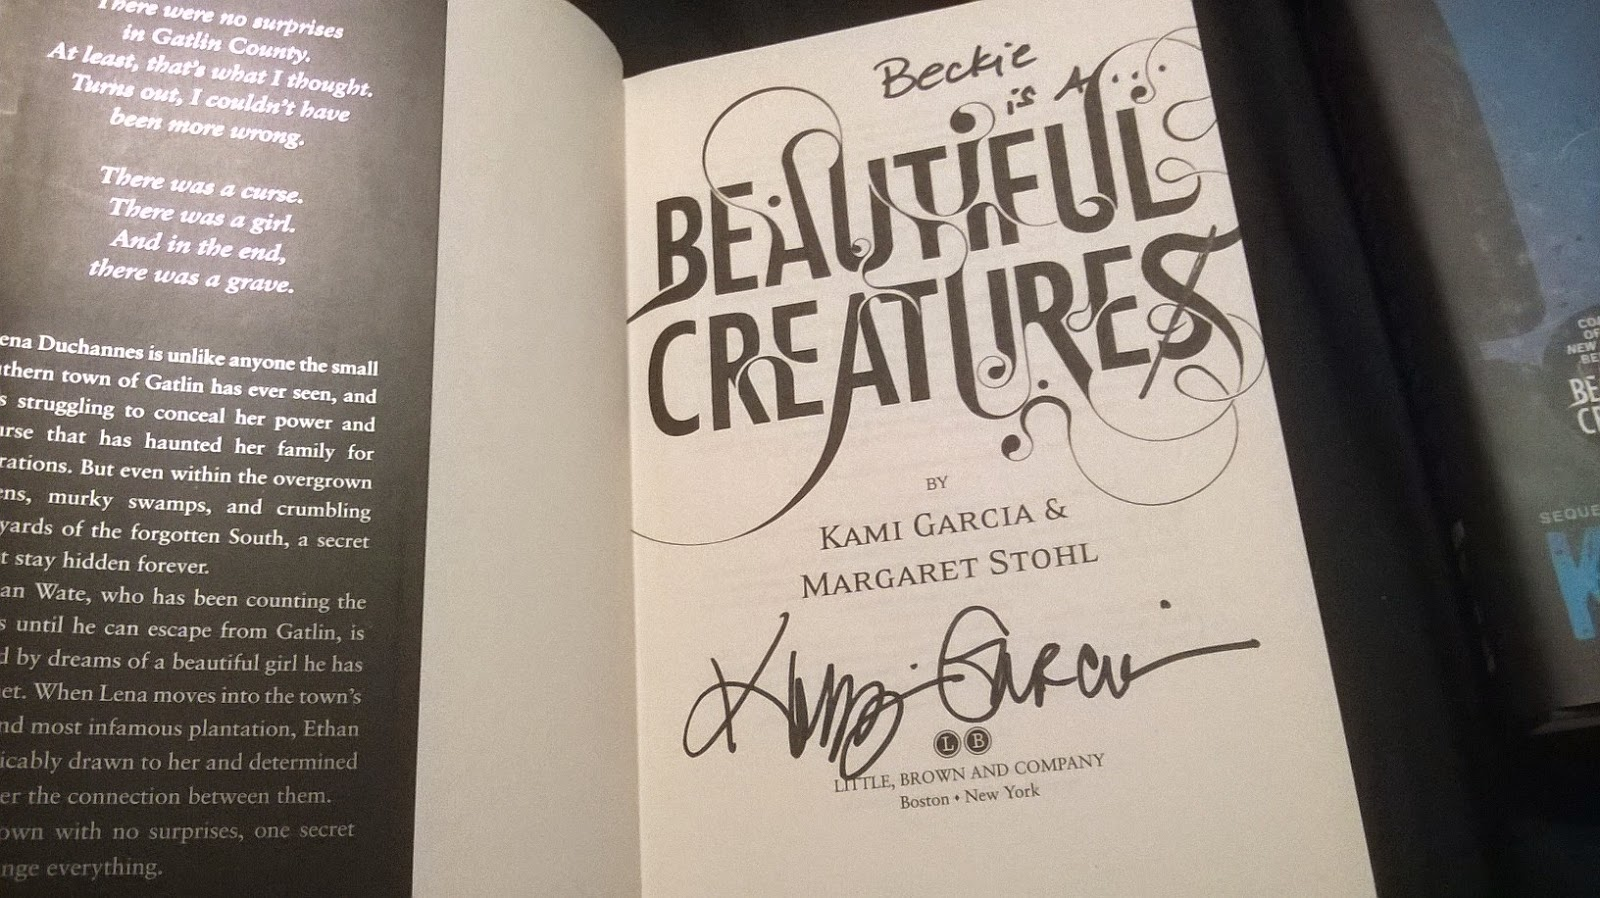 Beautiful Creatures By Kami Garcia & Margaret Stohl  Signed @author  Signing